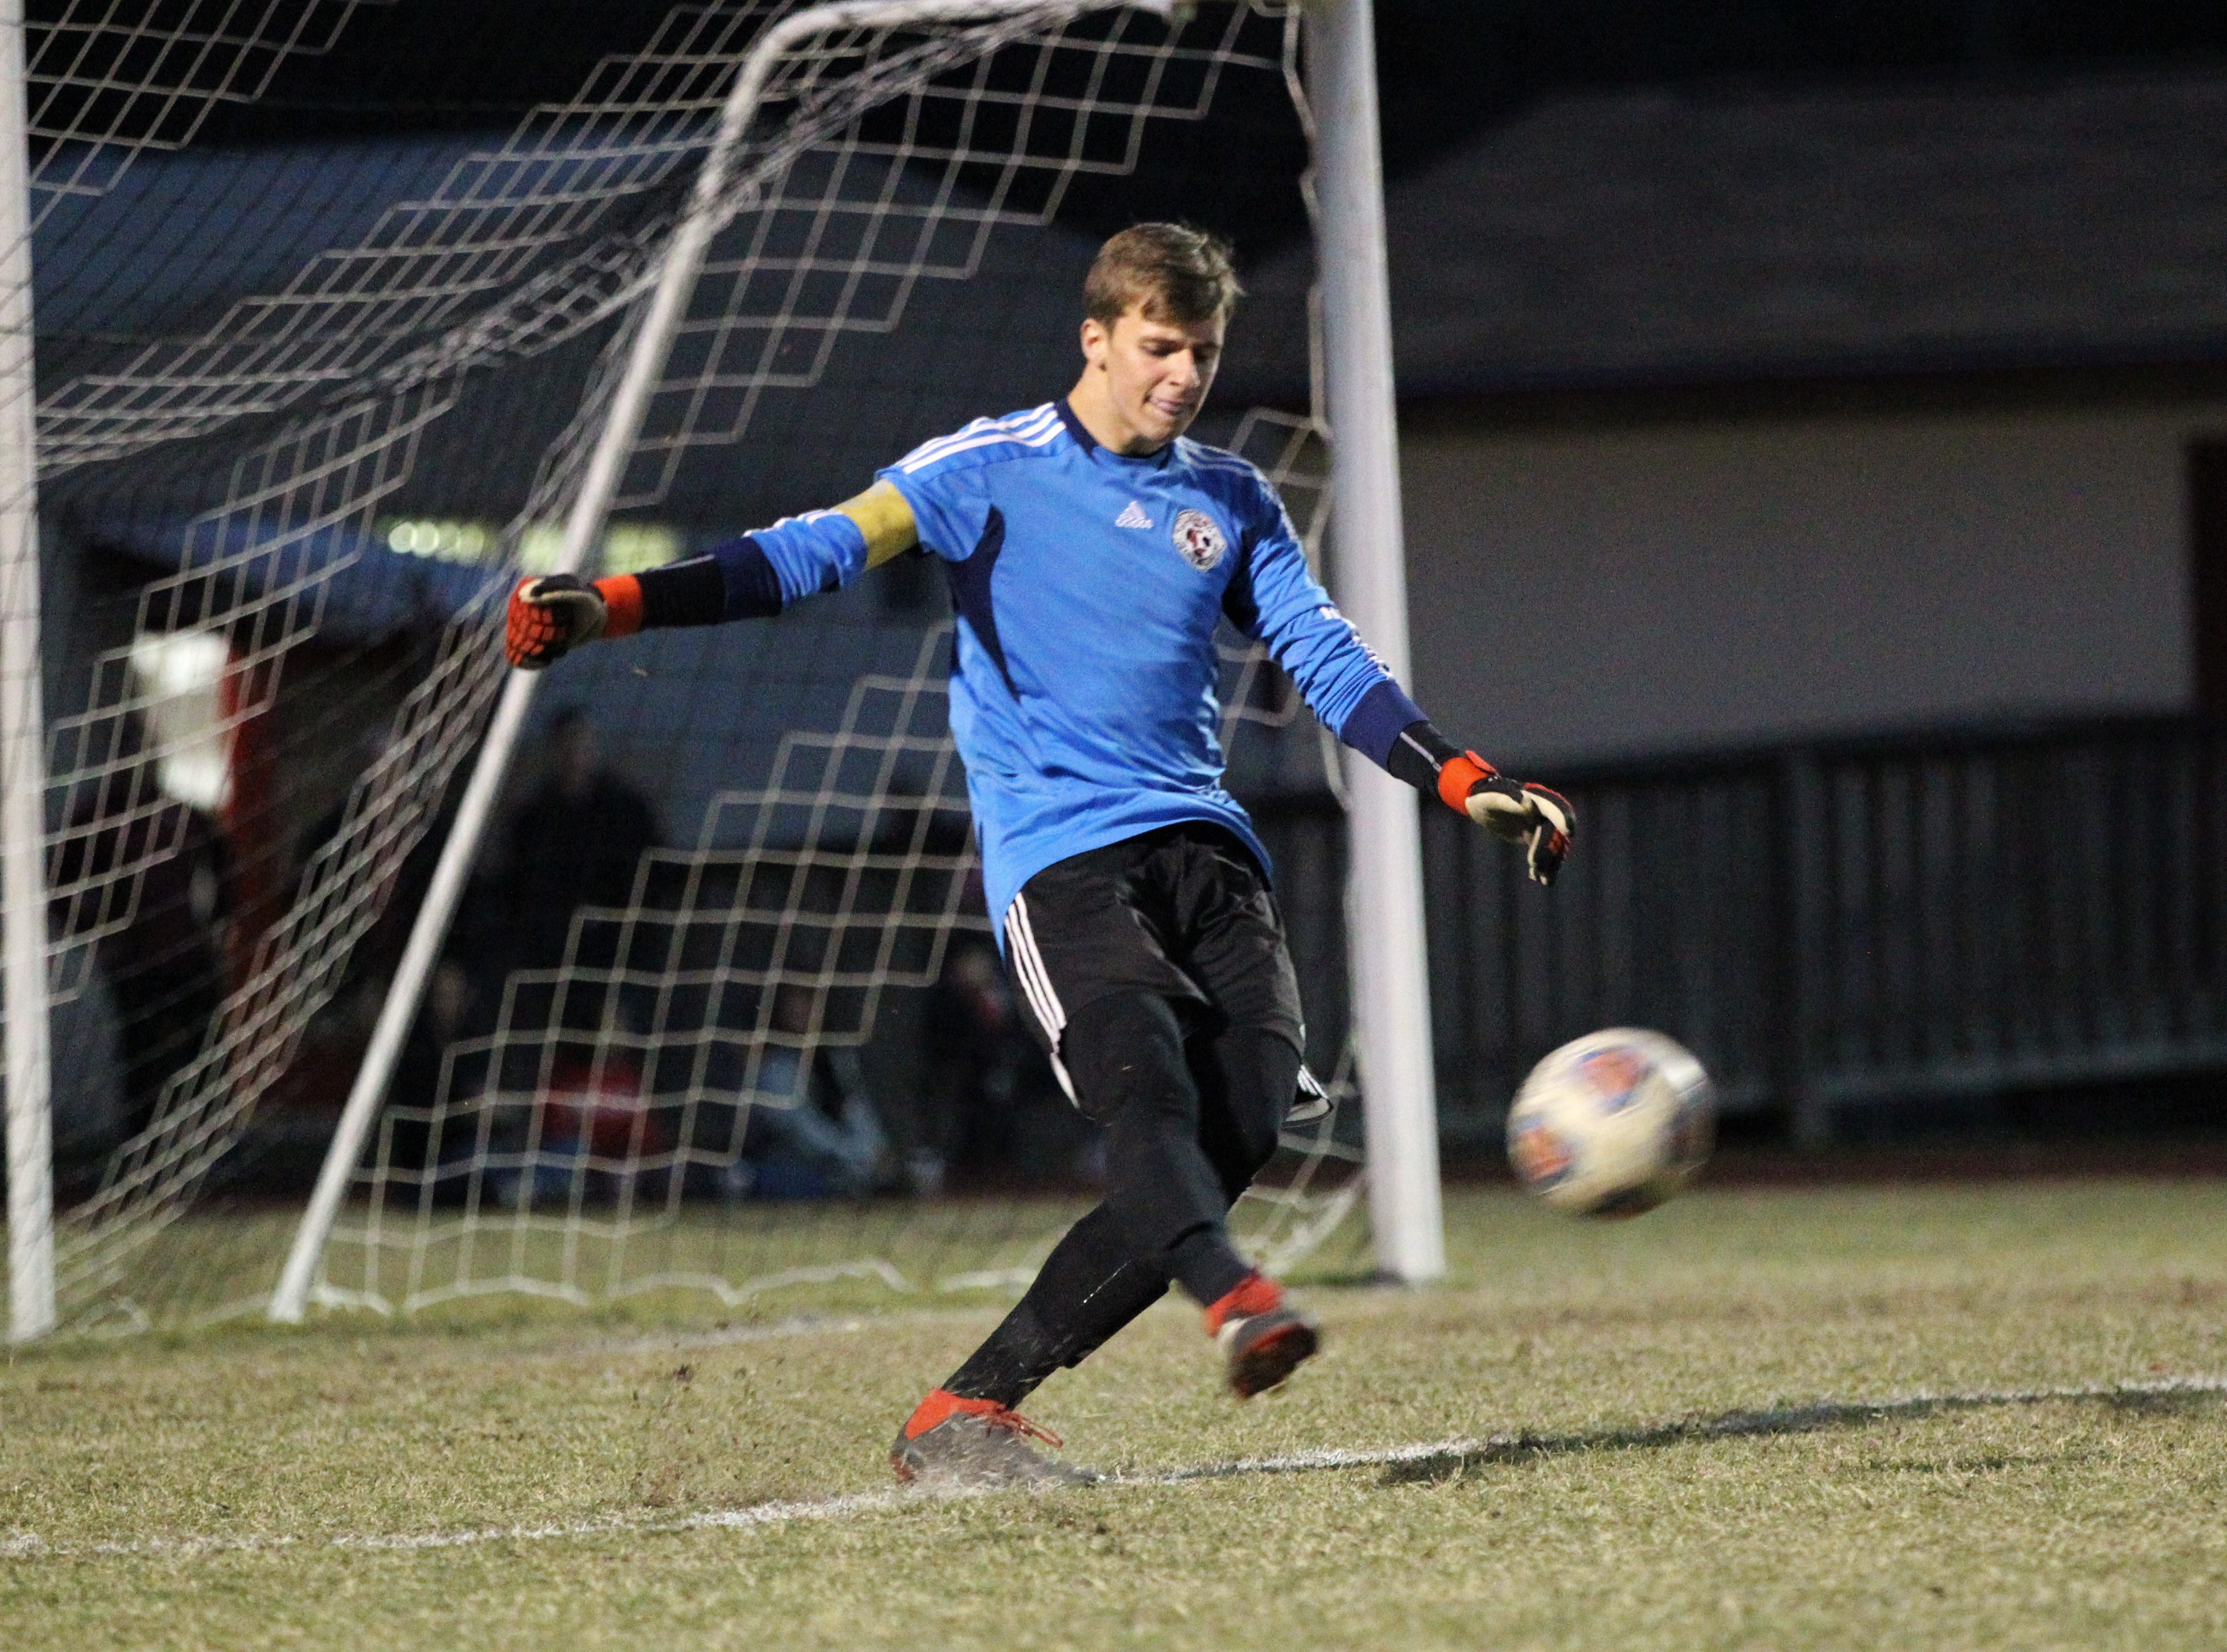 Leon keeper Sam Schaefer takes a goal kick as the Lions' boys soccer team beat Niceville 1-0 in a Region 1-4A semifinal on Feb. 9, 2019.